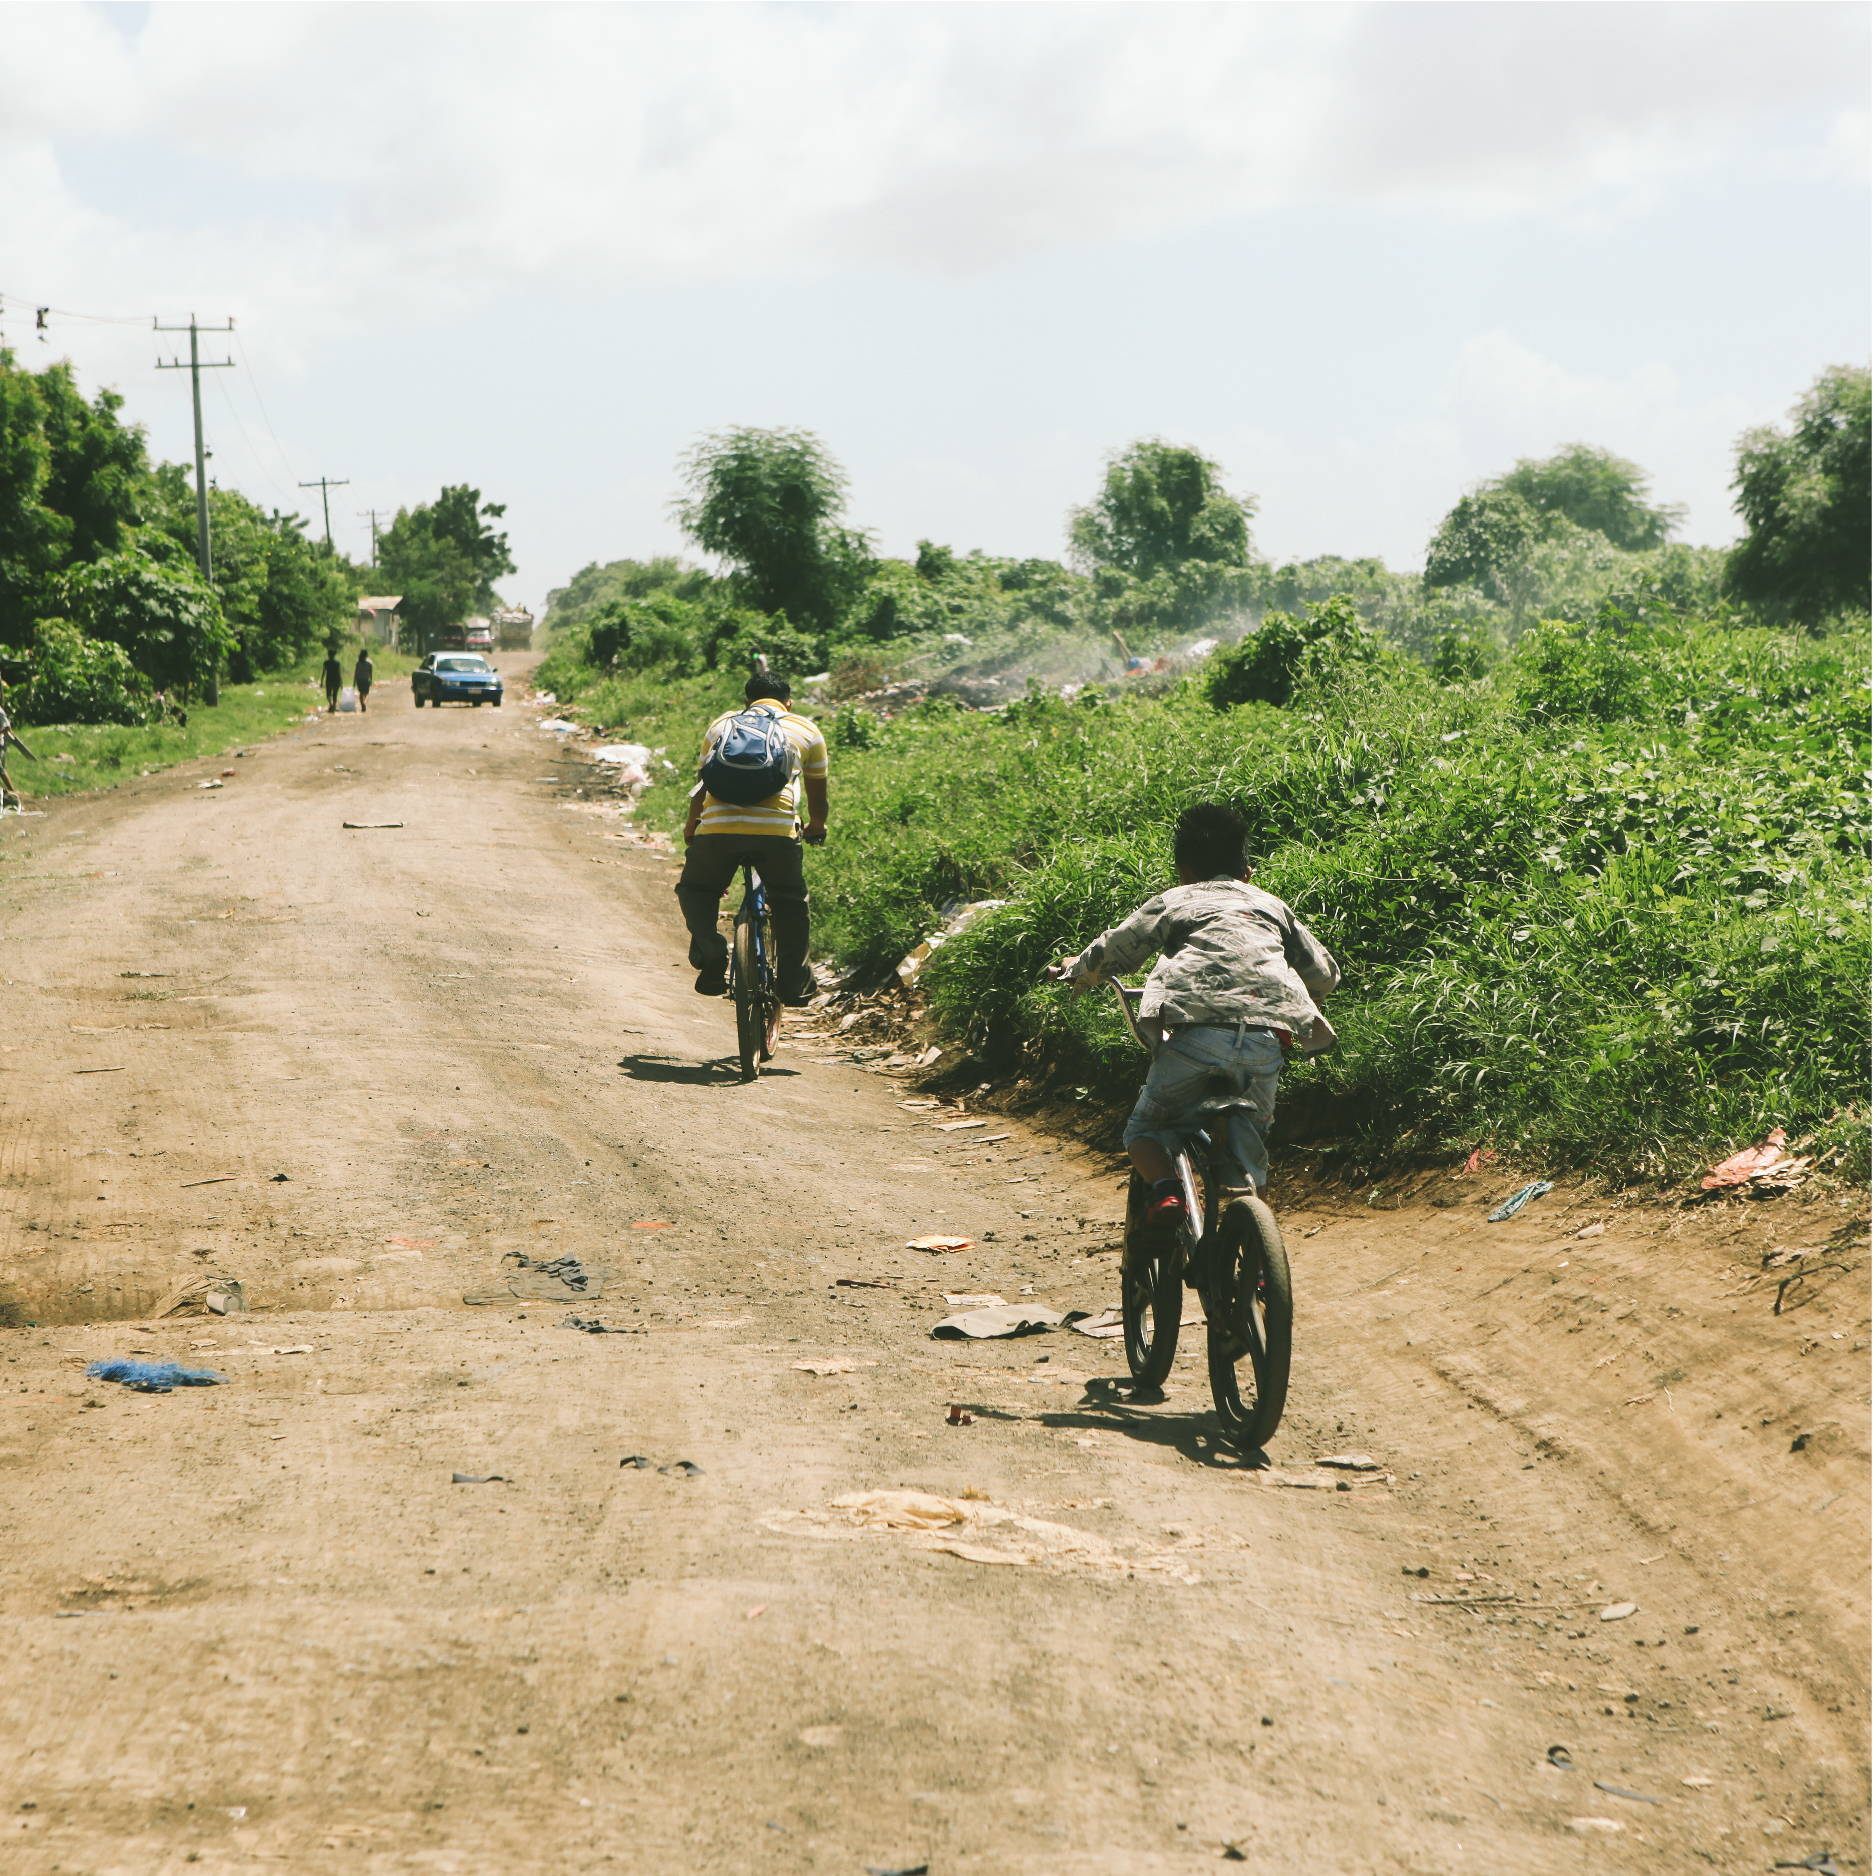 A man and his son ride their bikes down a trash lined dirt road in Nicaragua. The road is surrounded by overgrown vegetation.